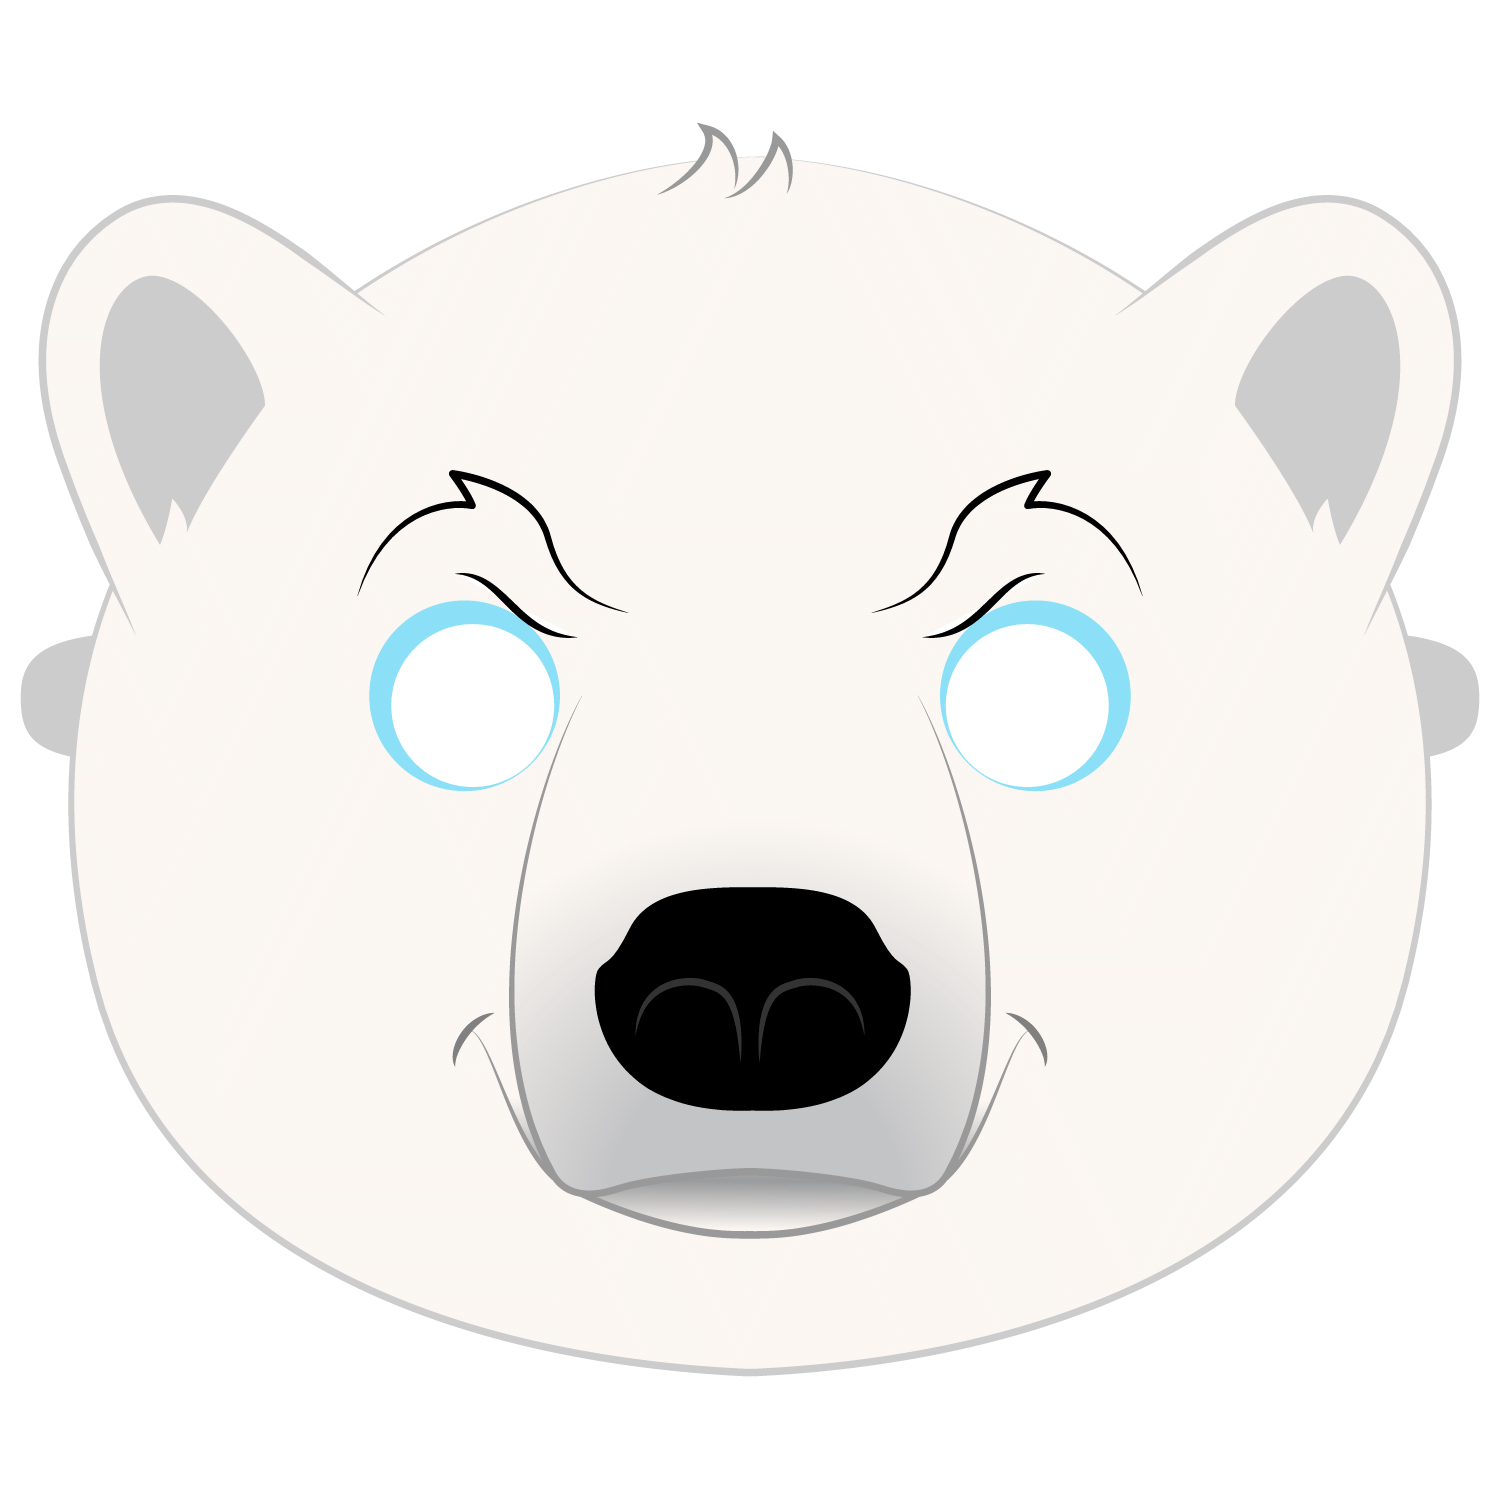 Polar Bear Mask Template | Free Printable Papercraft Templates - Free Printable Bear Mask